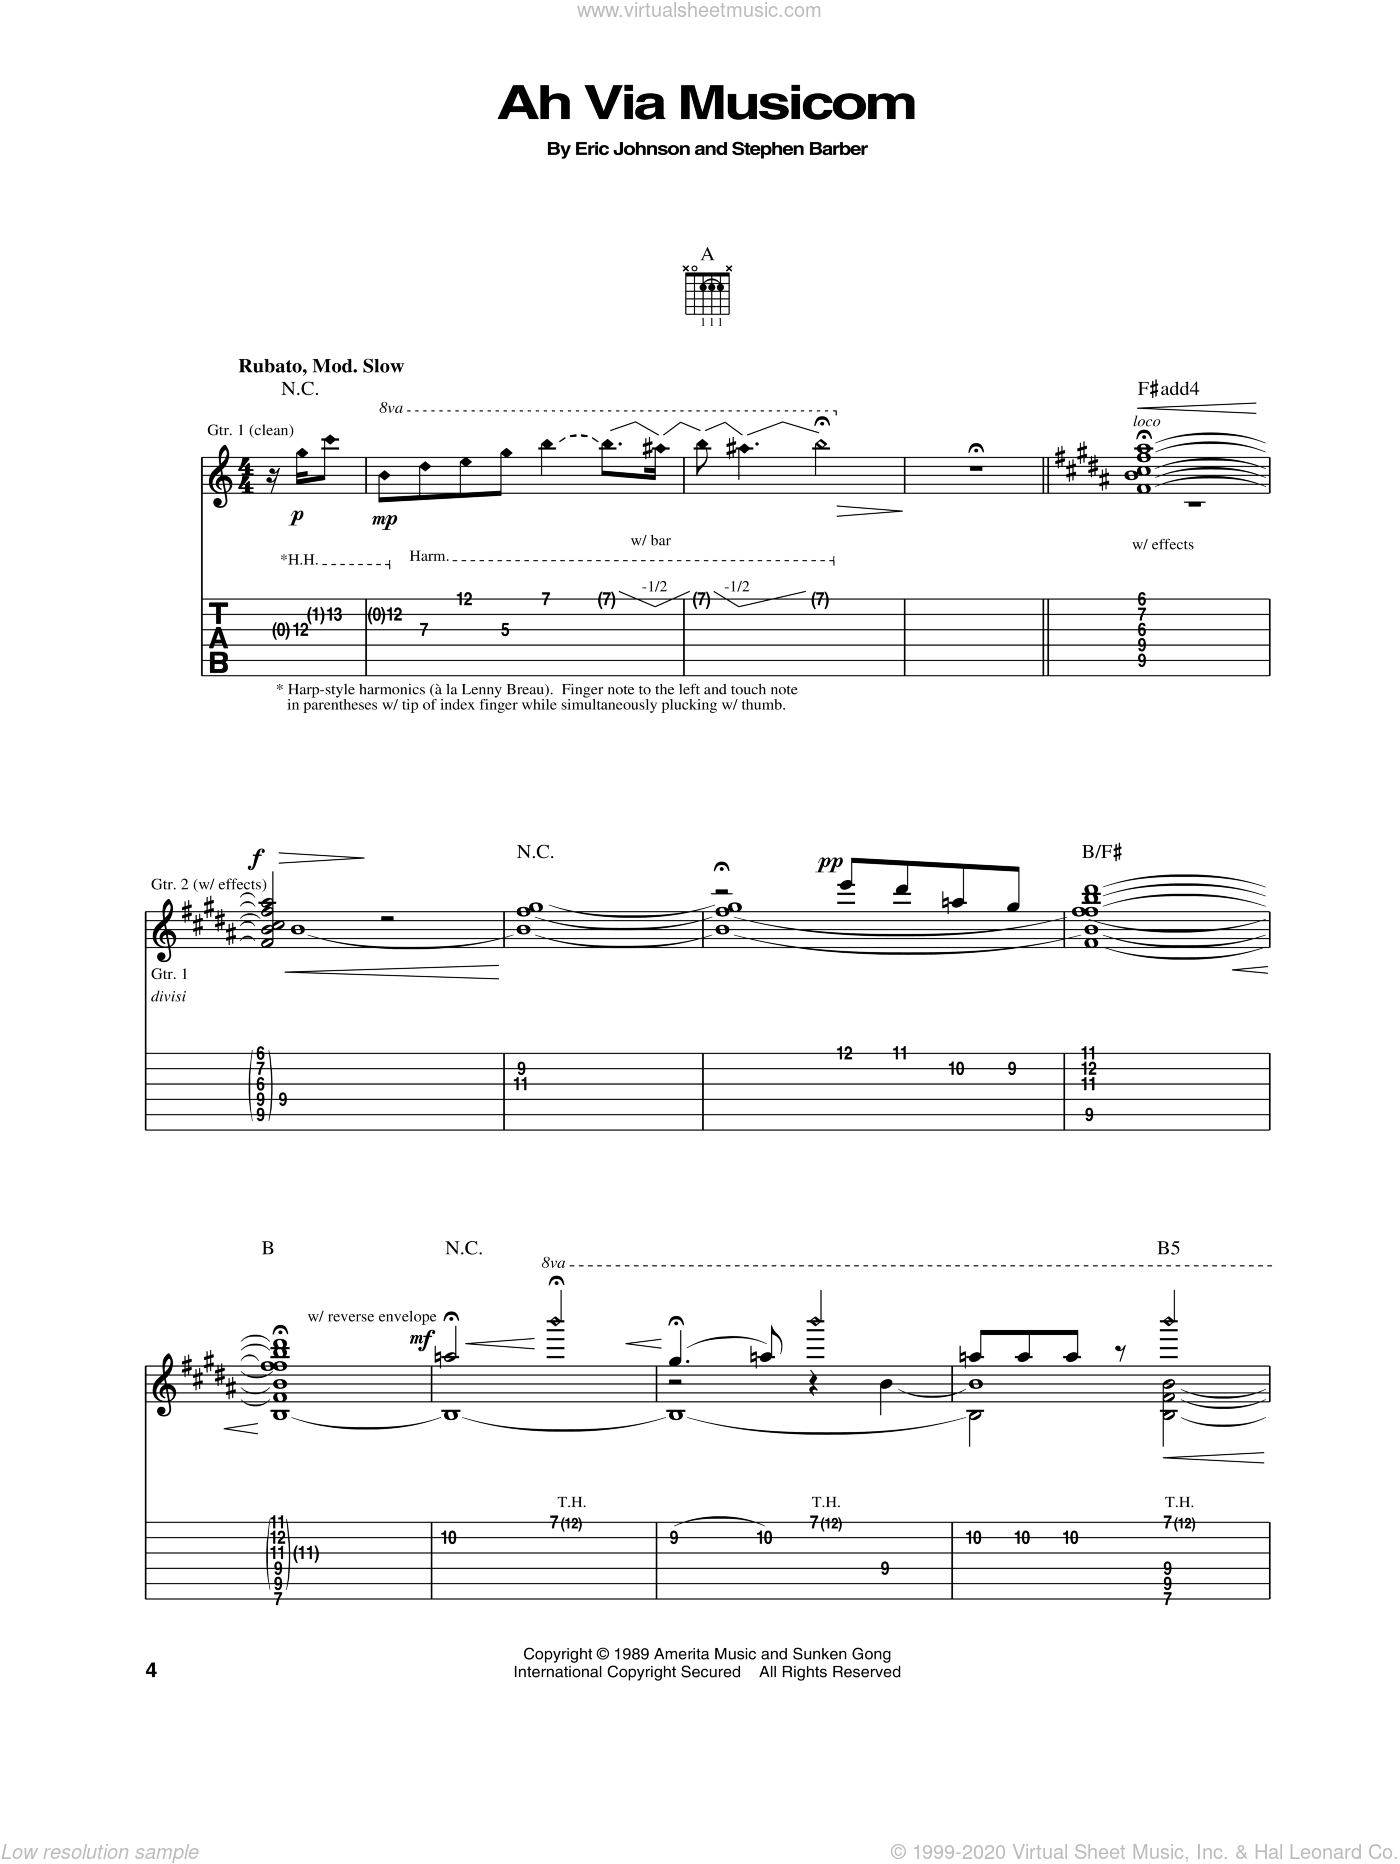 Ah Via Musicom sheet music for guitar (tablature) by Stephen Barber